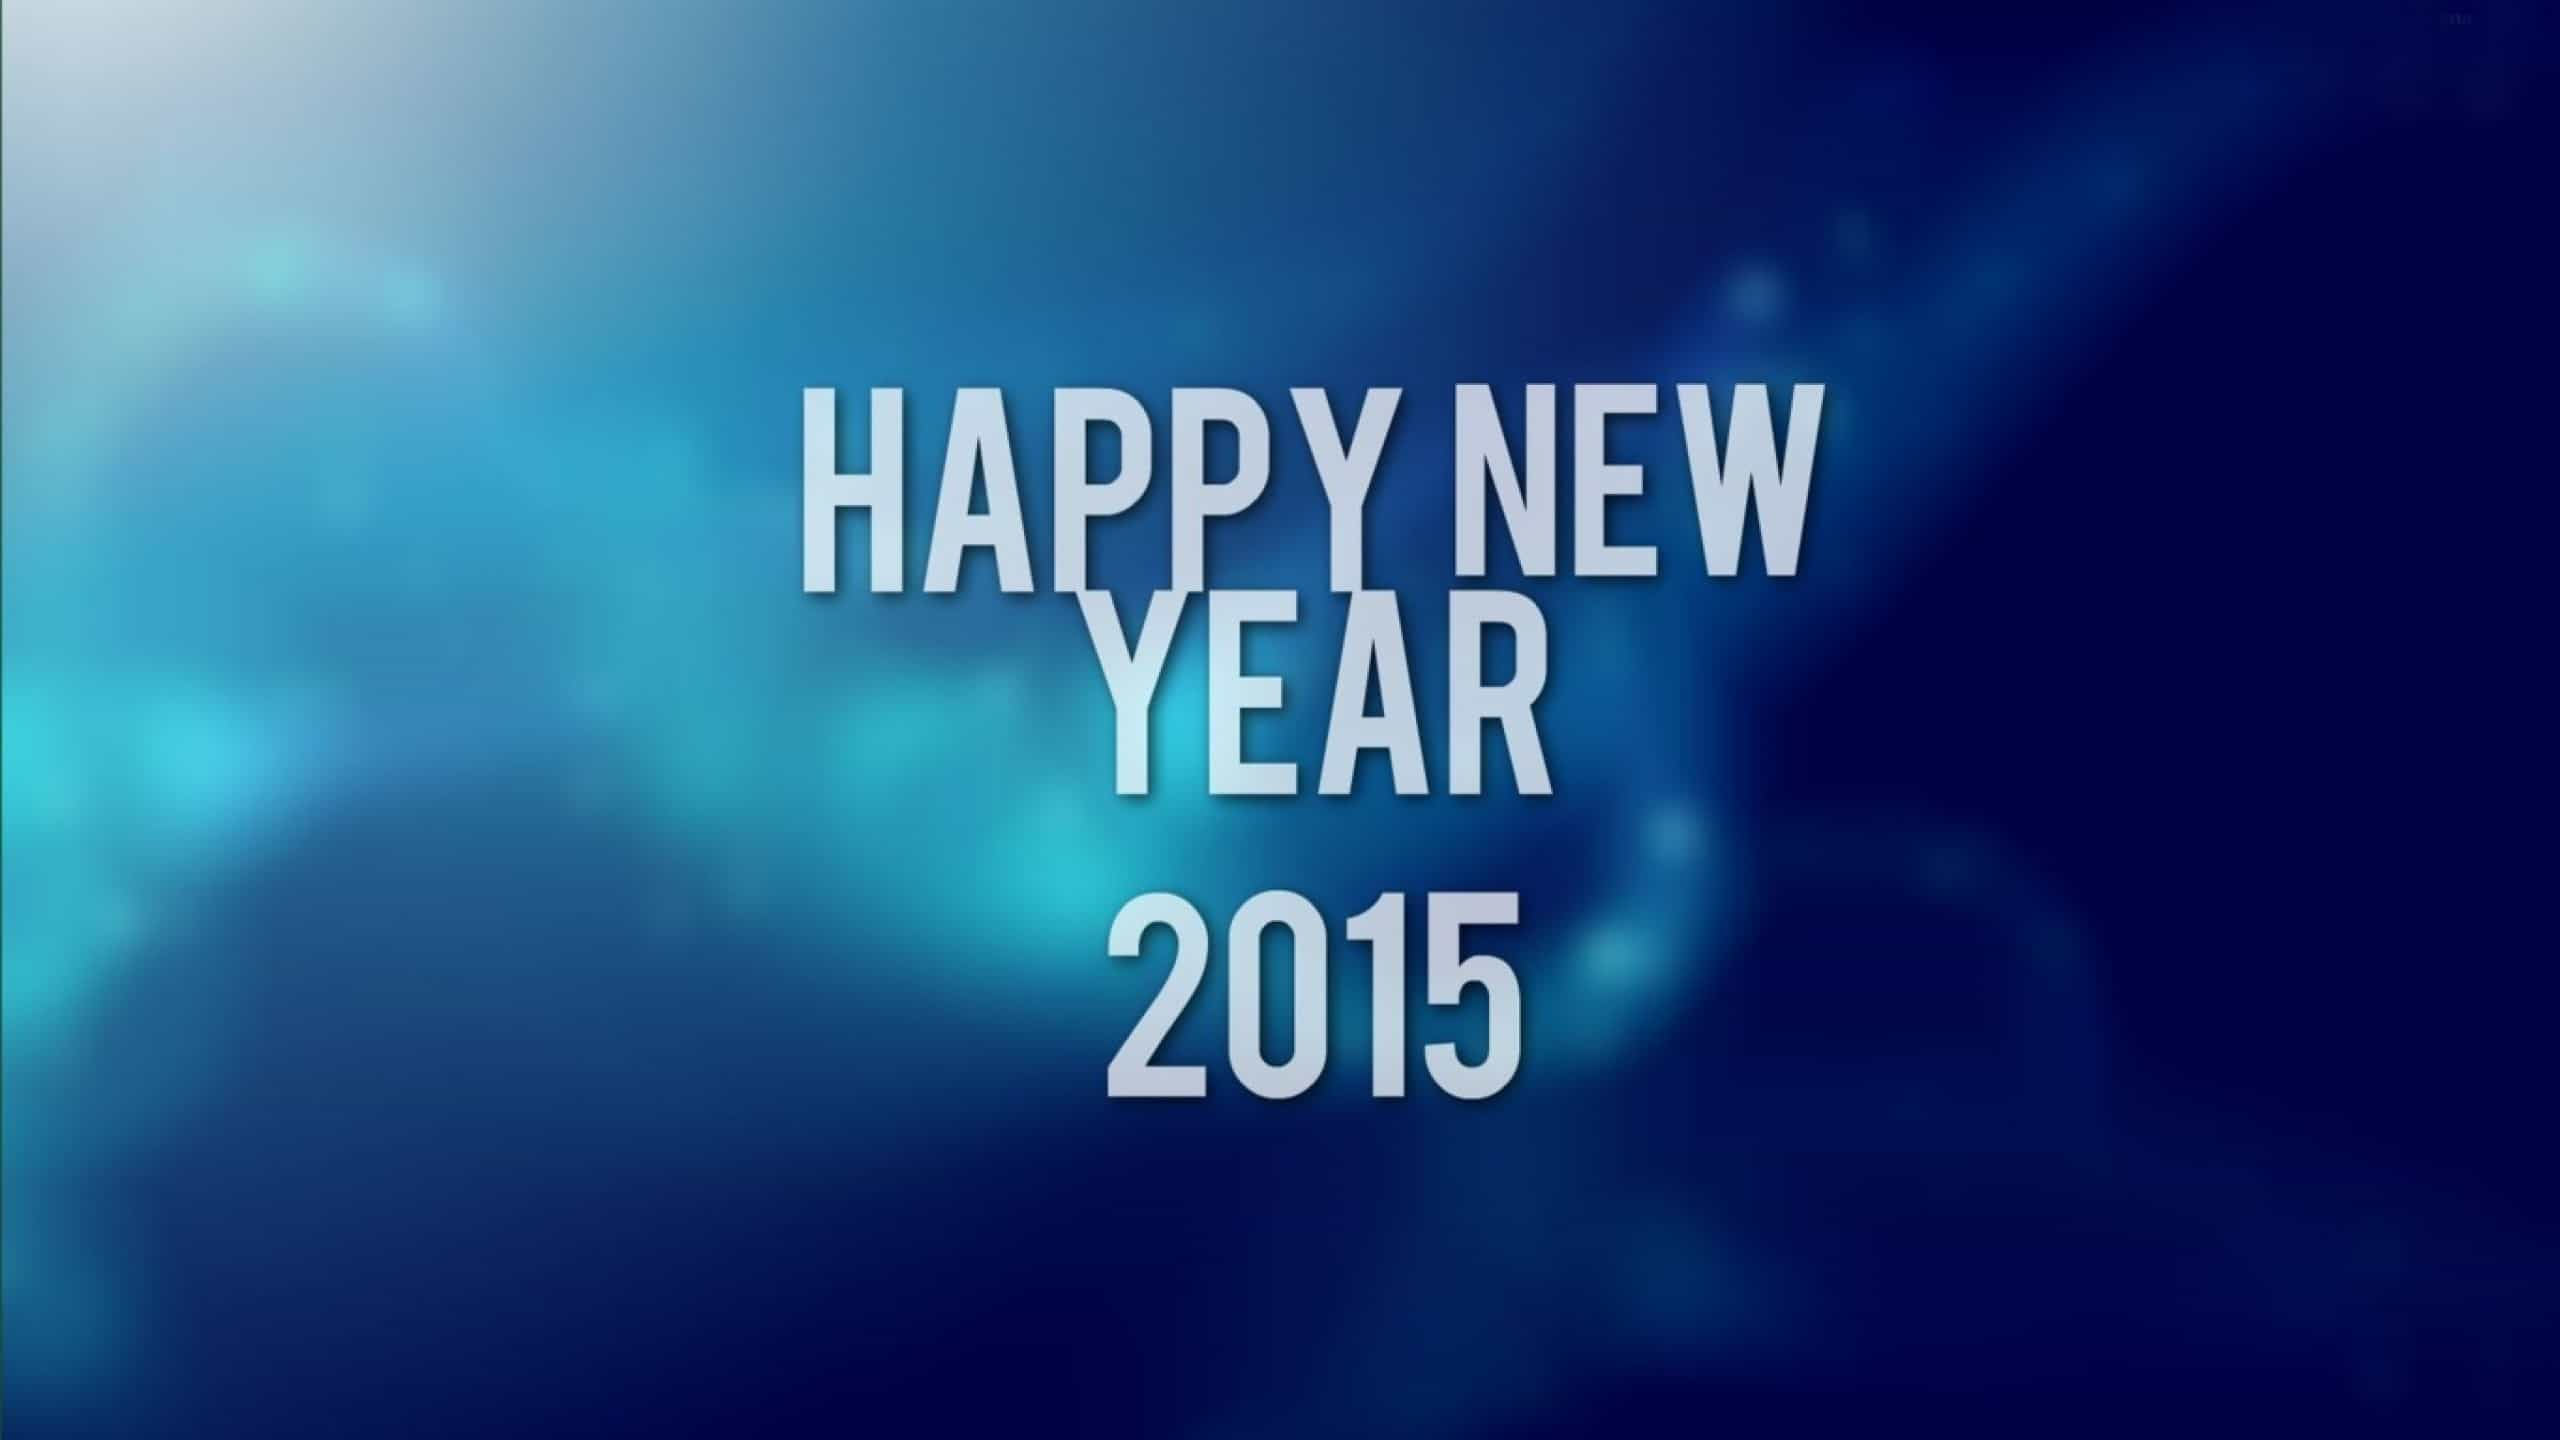 2015 happy new year wallpaper hd happy_new_year_2015_hd_wallpaper happy_new_year_hd_wallpaper_2015